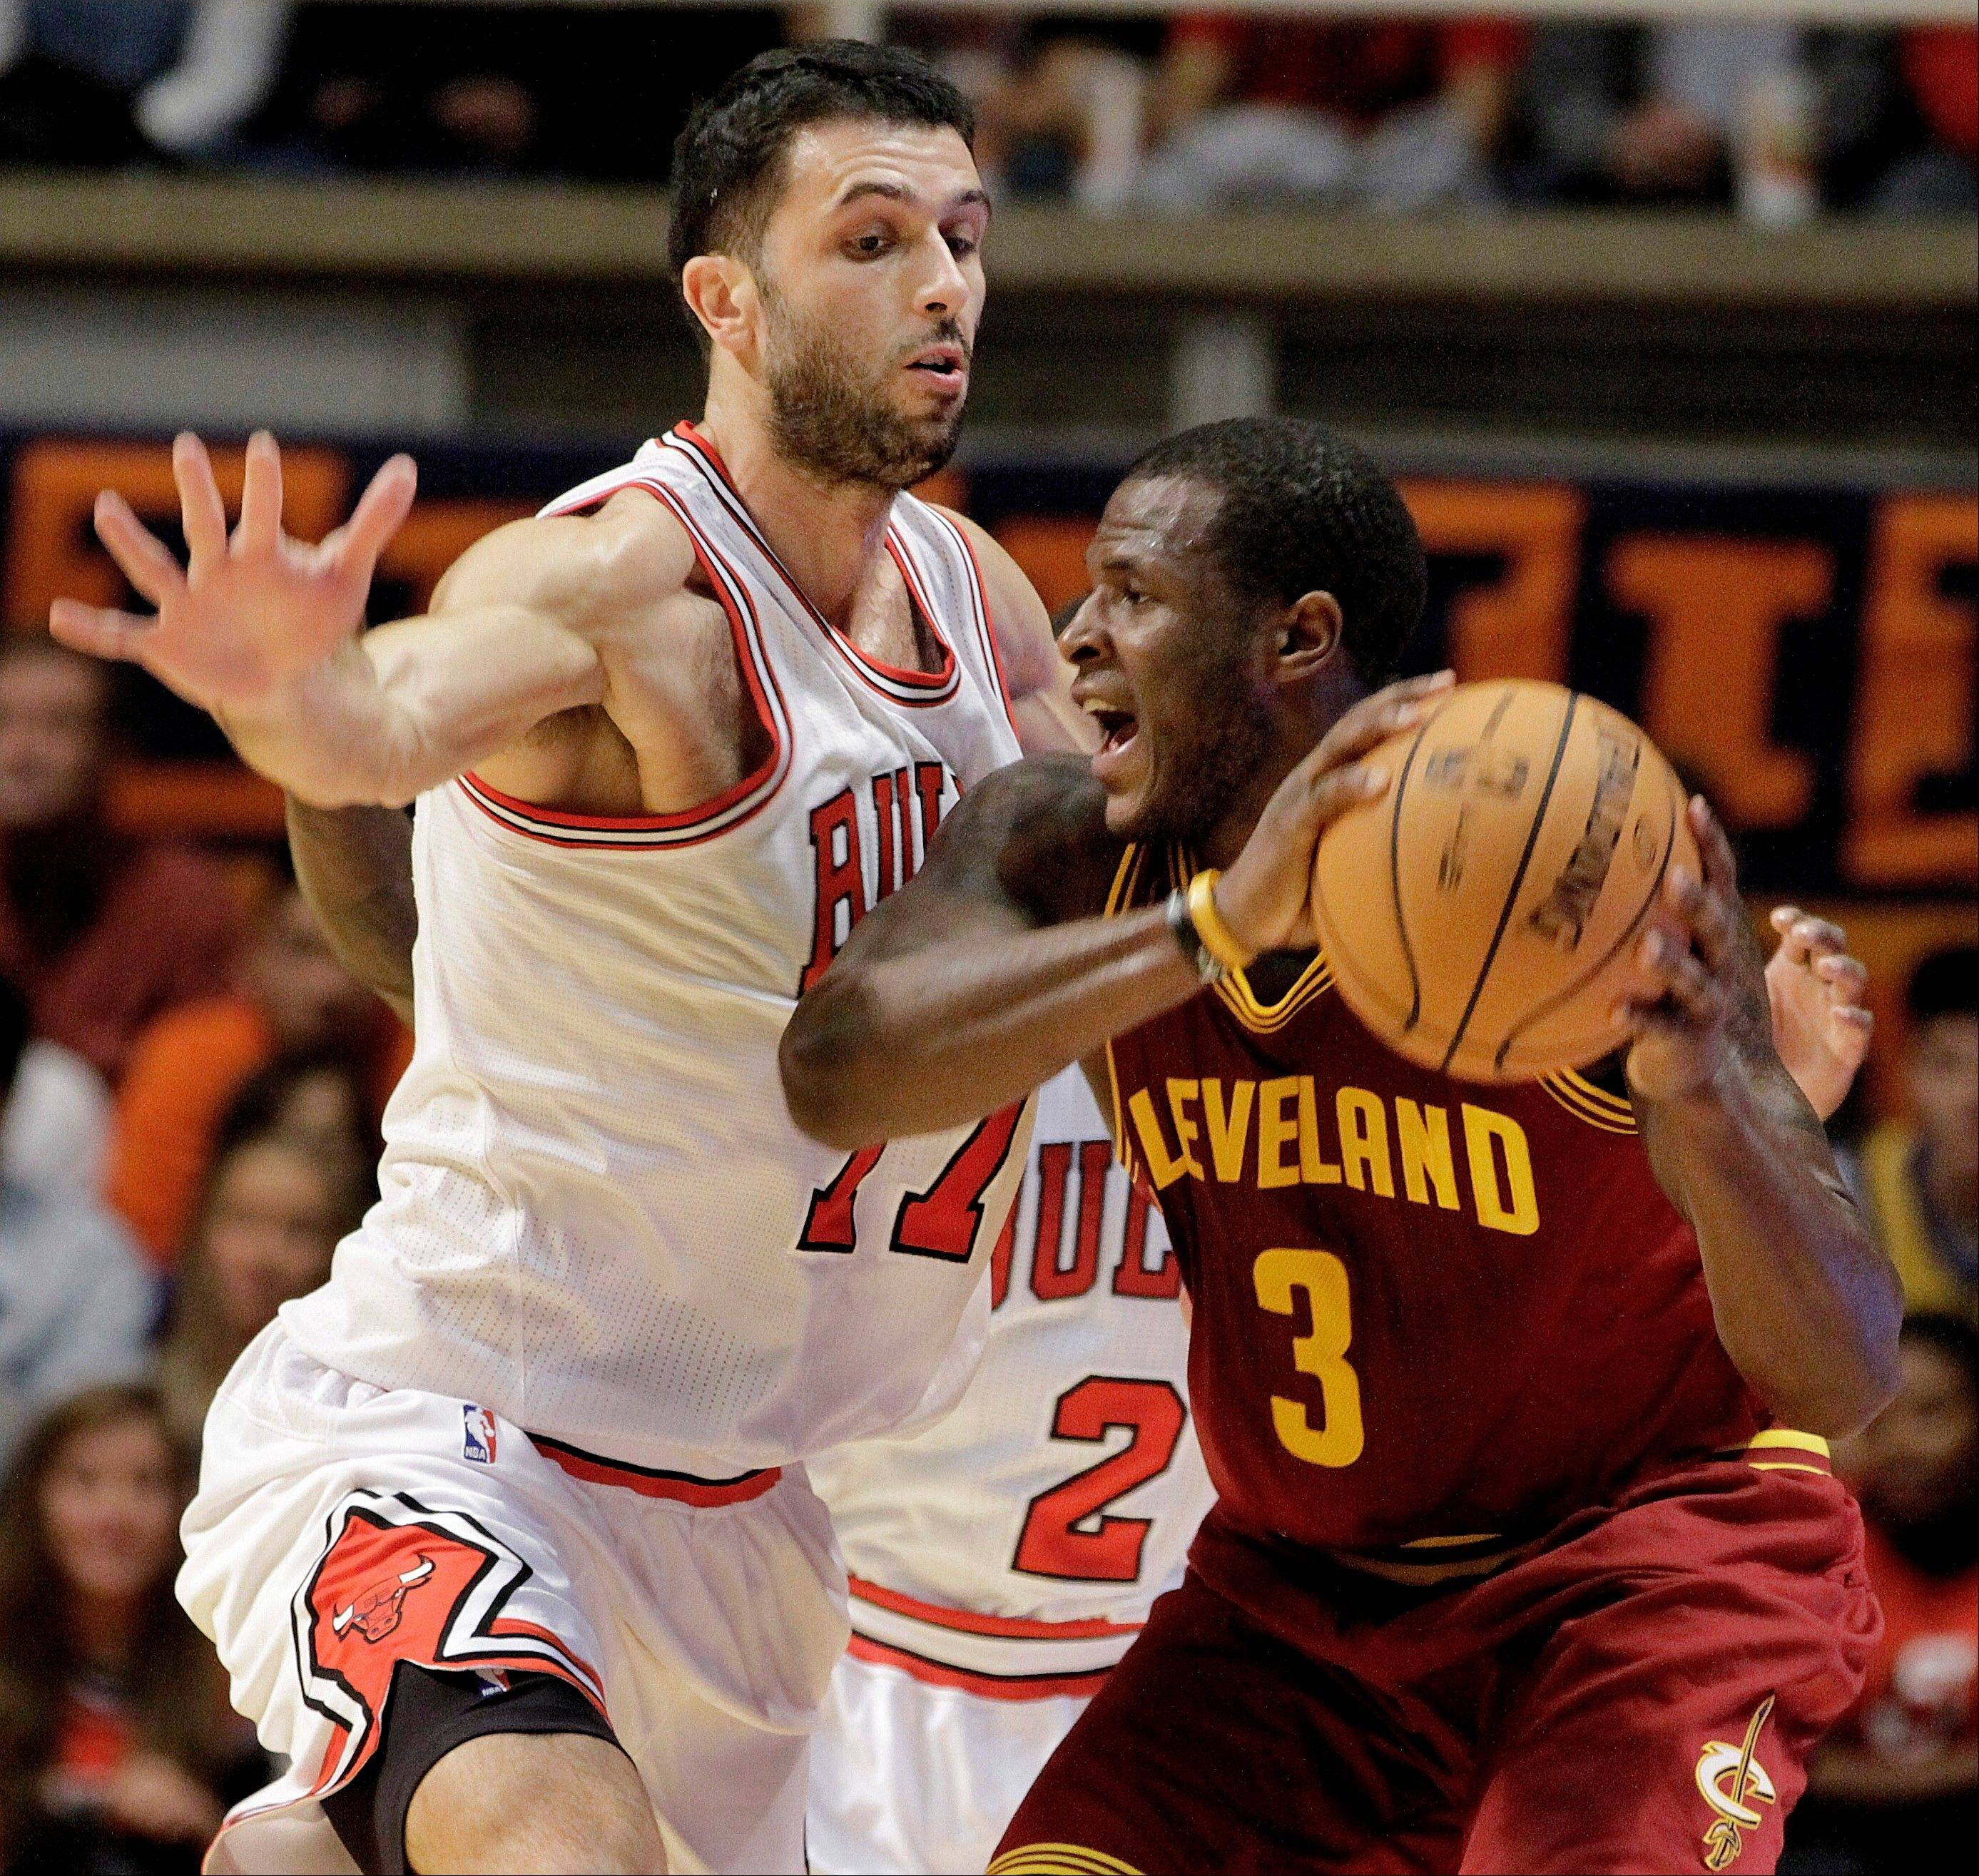 Cleveland Cavaliers guard Dion Waiters goes against Bulls forward Vladimir Radmanovic during preseason action.